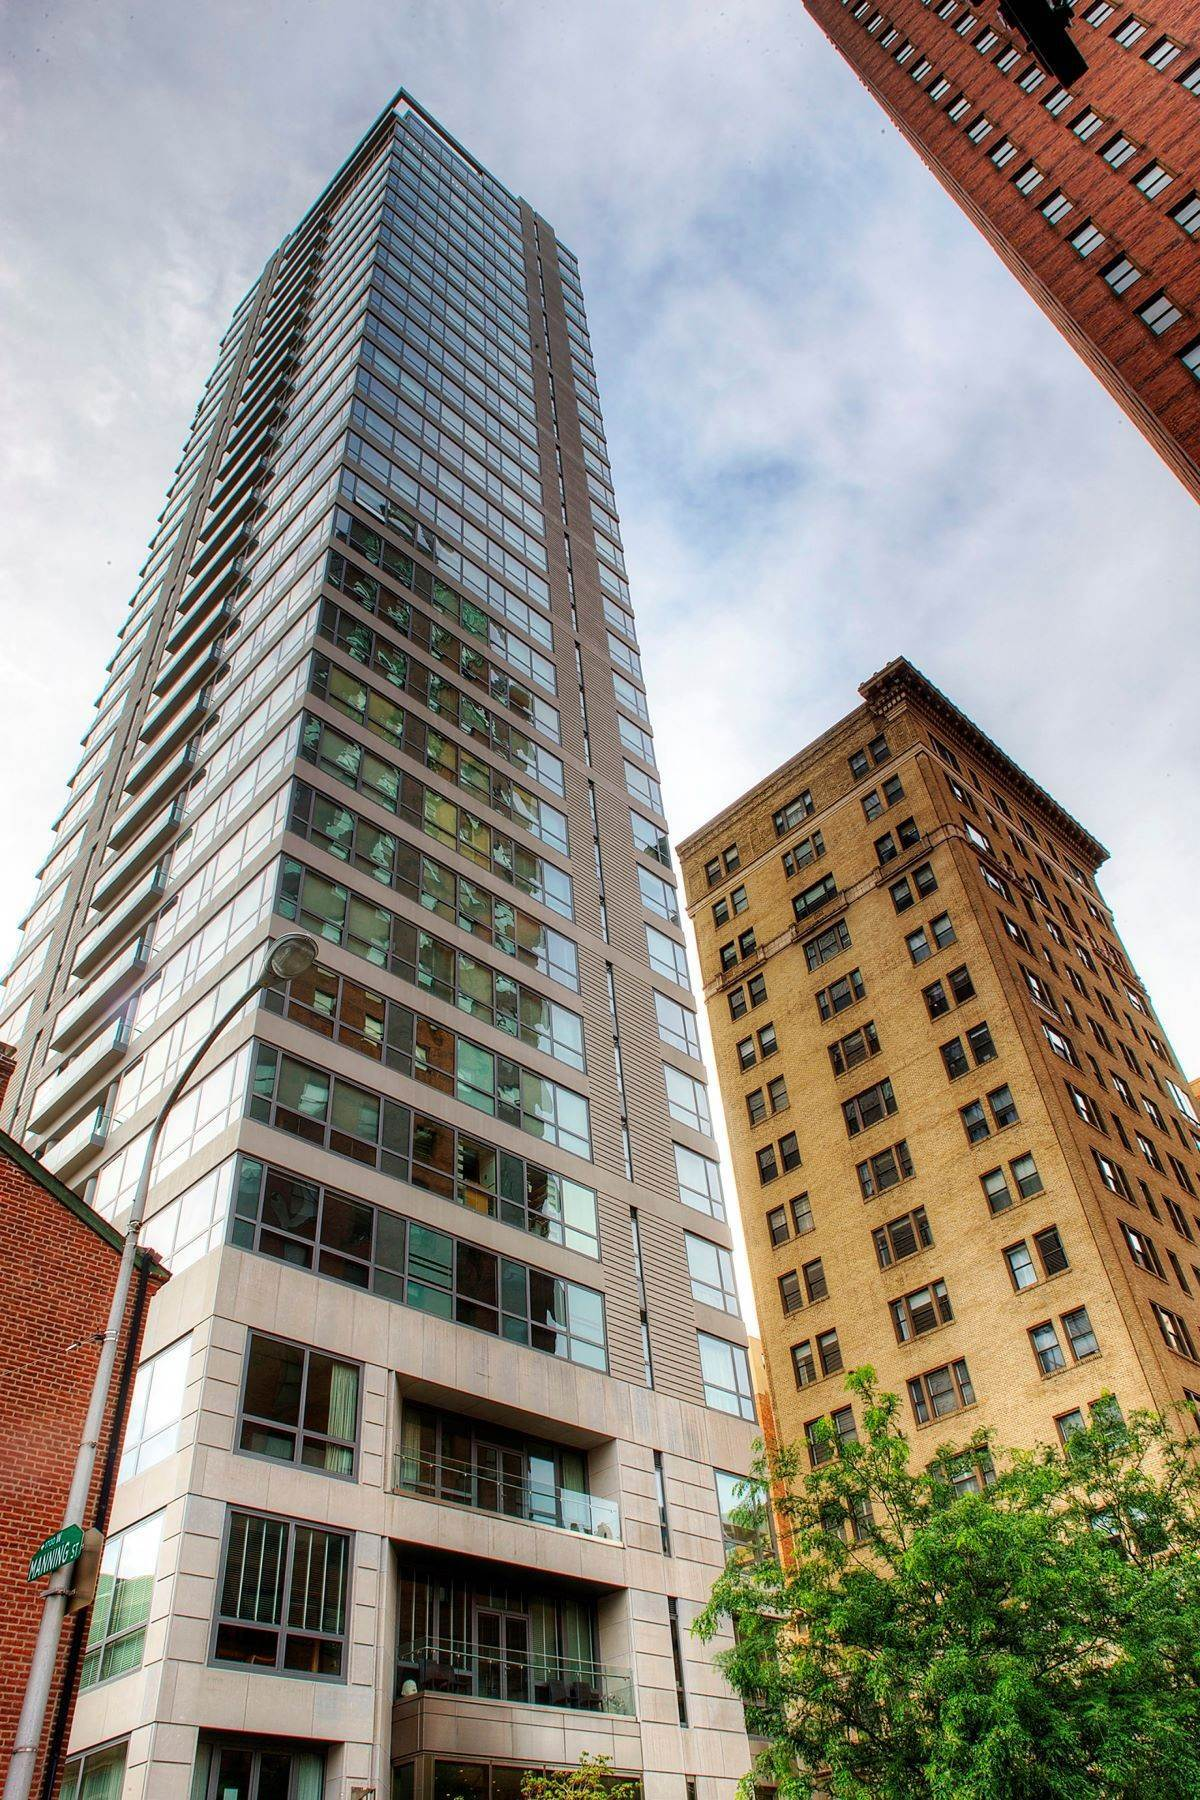 46. Condominiums for Sale at 1706 RITTENHOUSE SQ #2401, 2401 Philadelphia, Pennsylvania 19103 United States